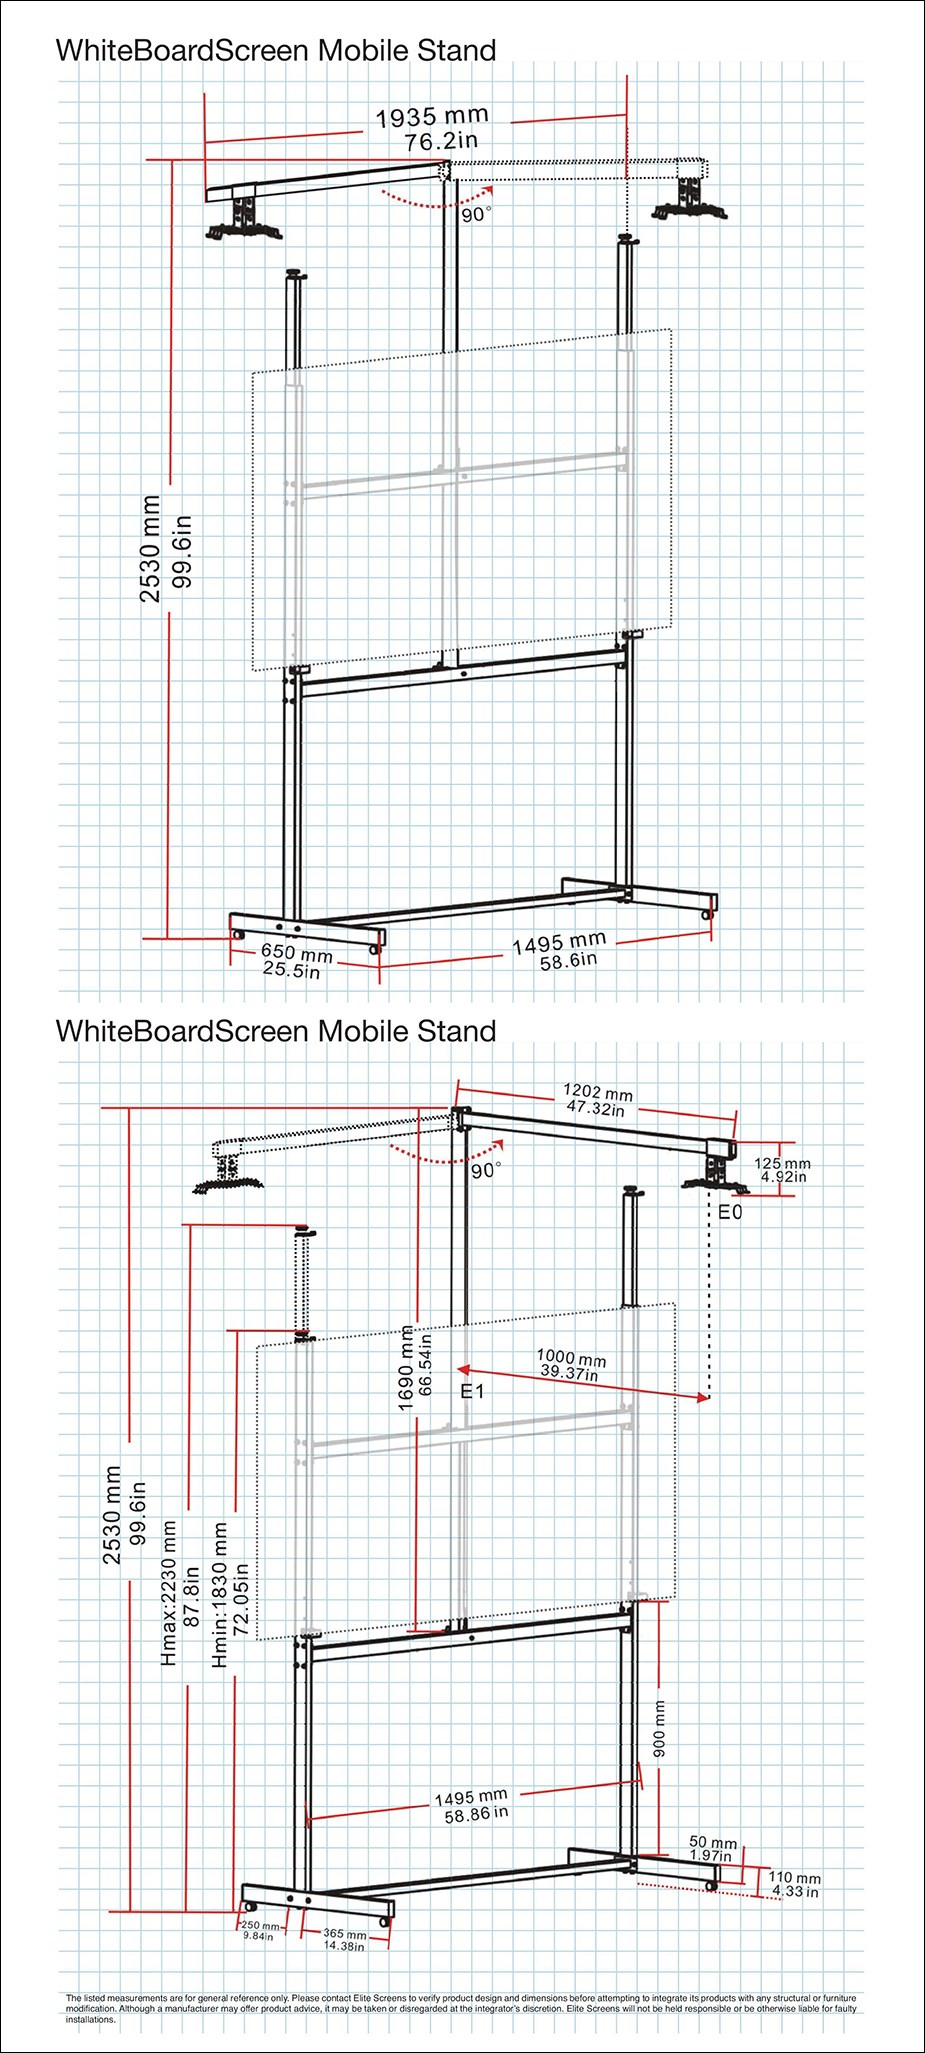 Elite Screens Whiteboard Screen Universal Mobile Stand - Overview 1